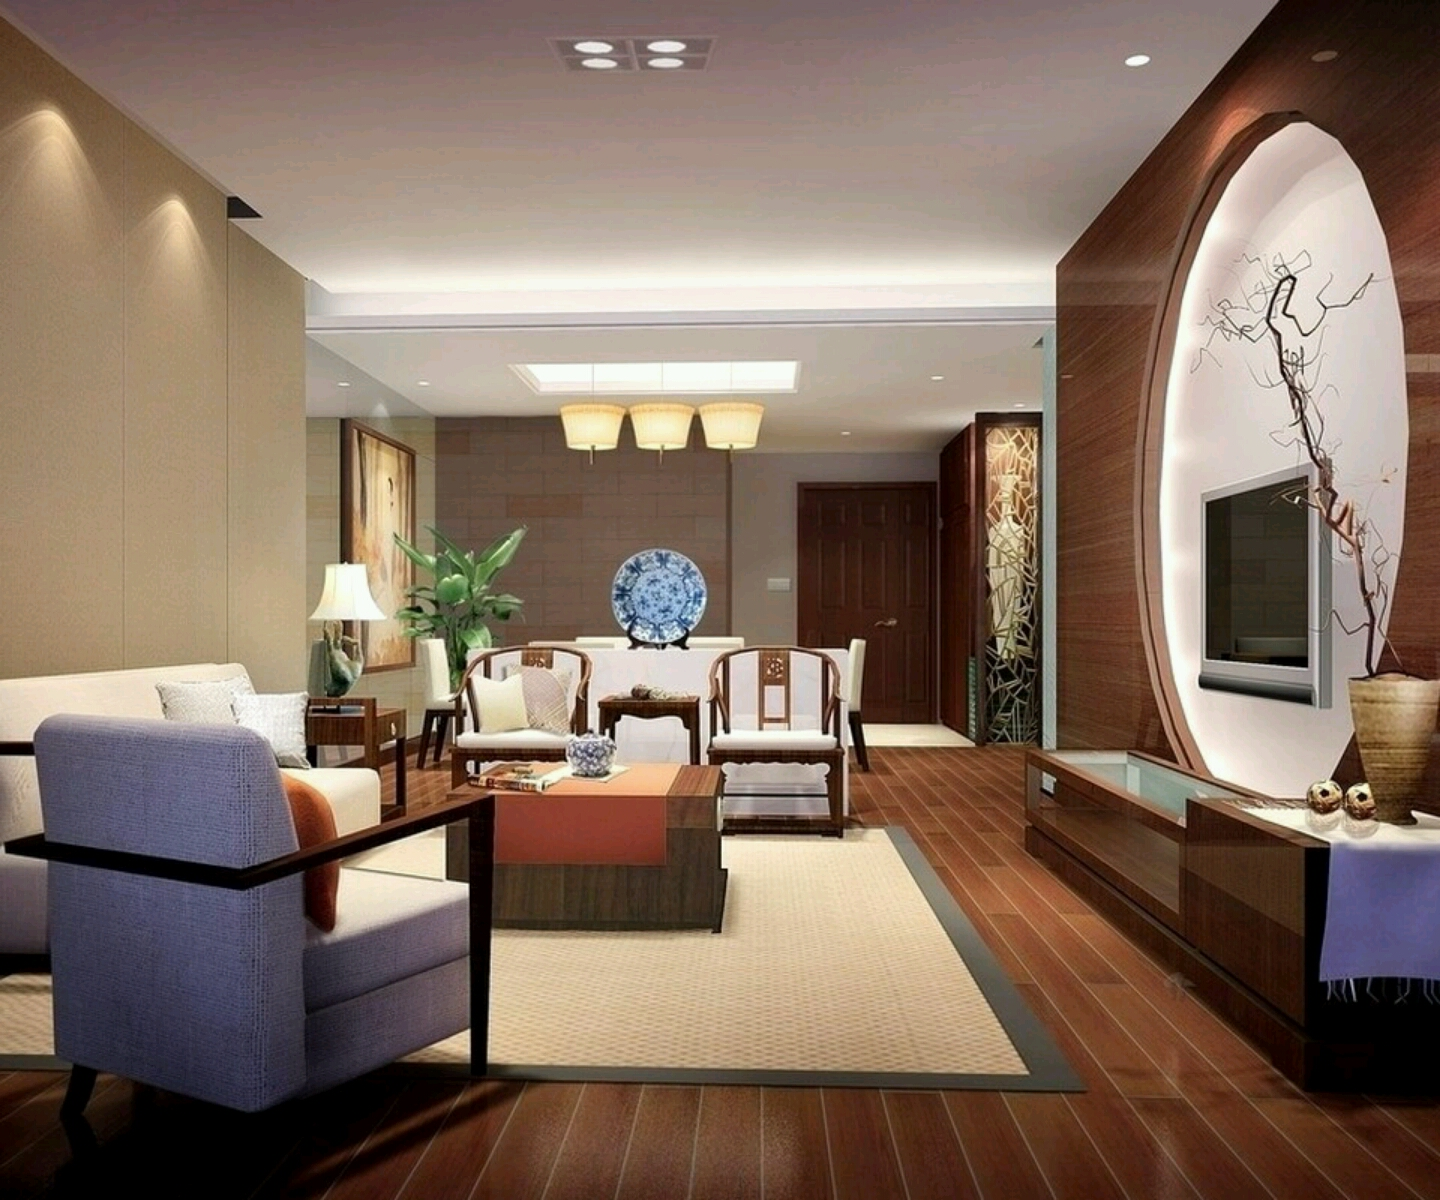 Luxury homes interior decoration living room designs ideas for New home interior ideas